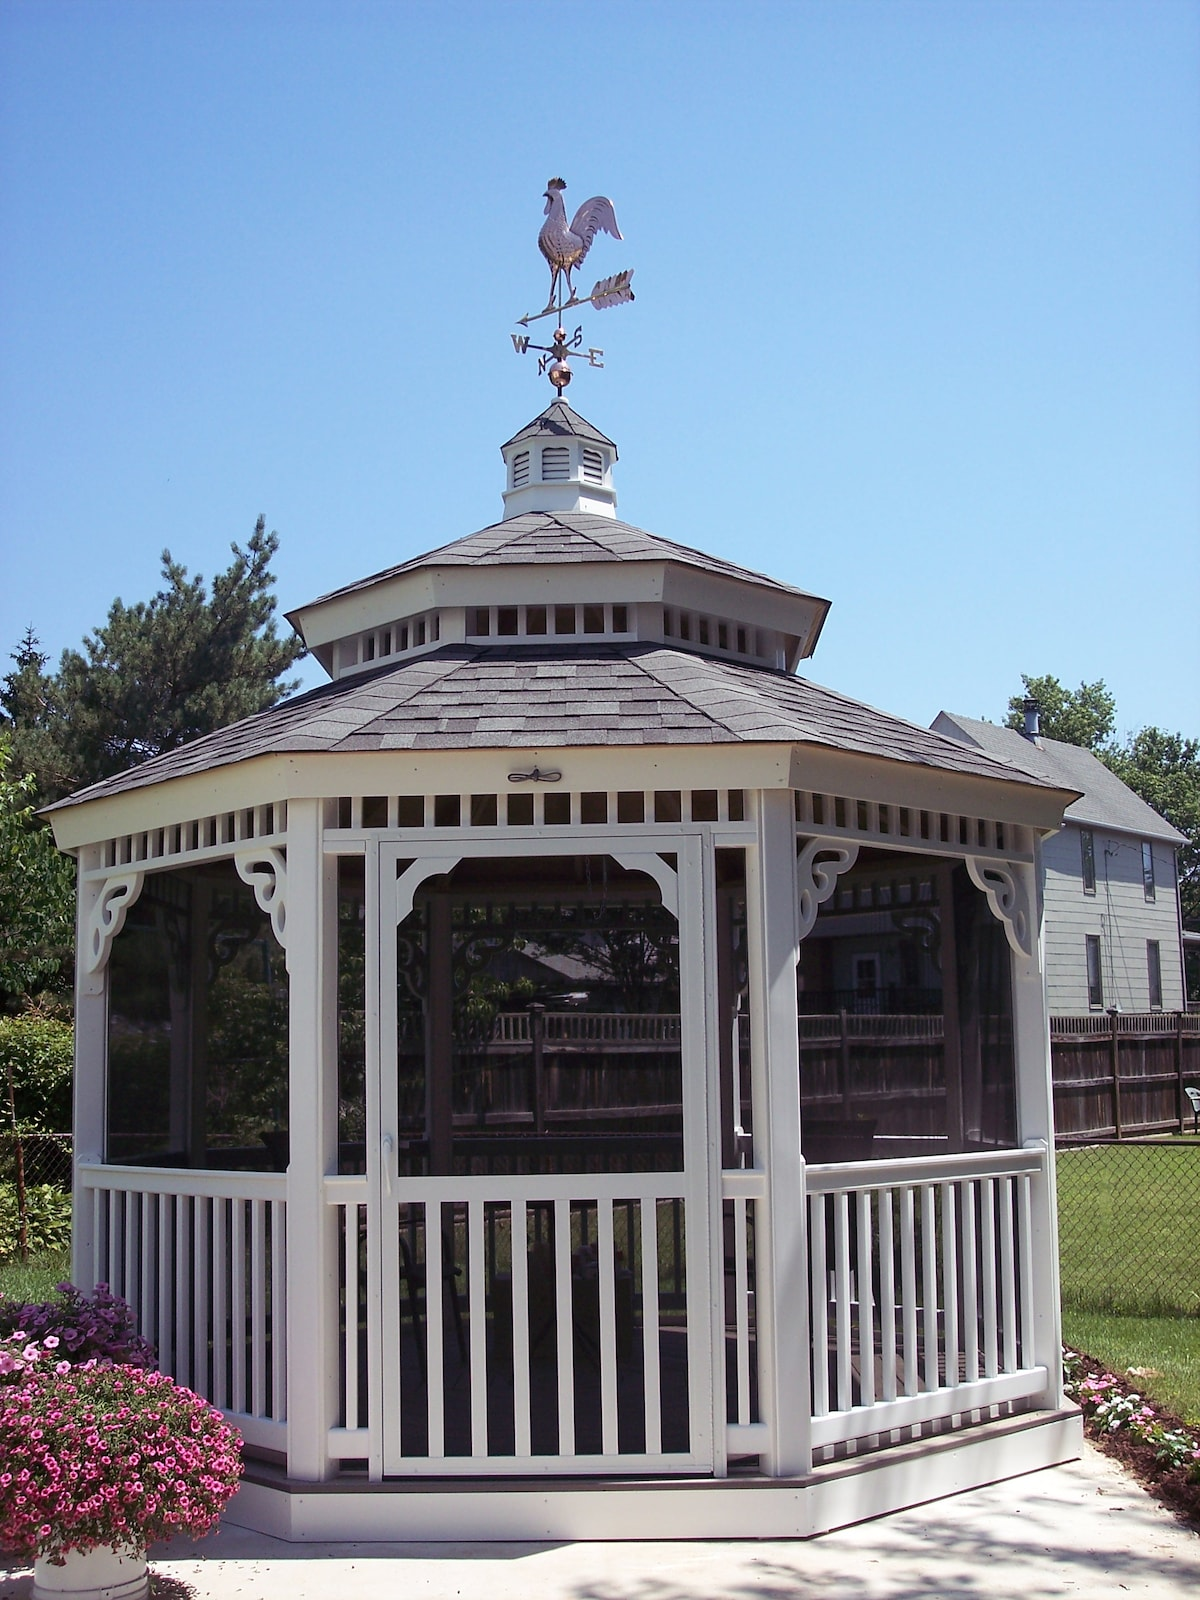 backkyard gazebo